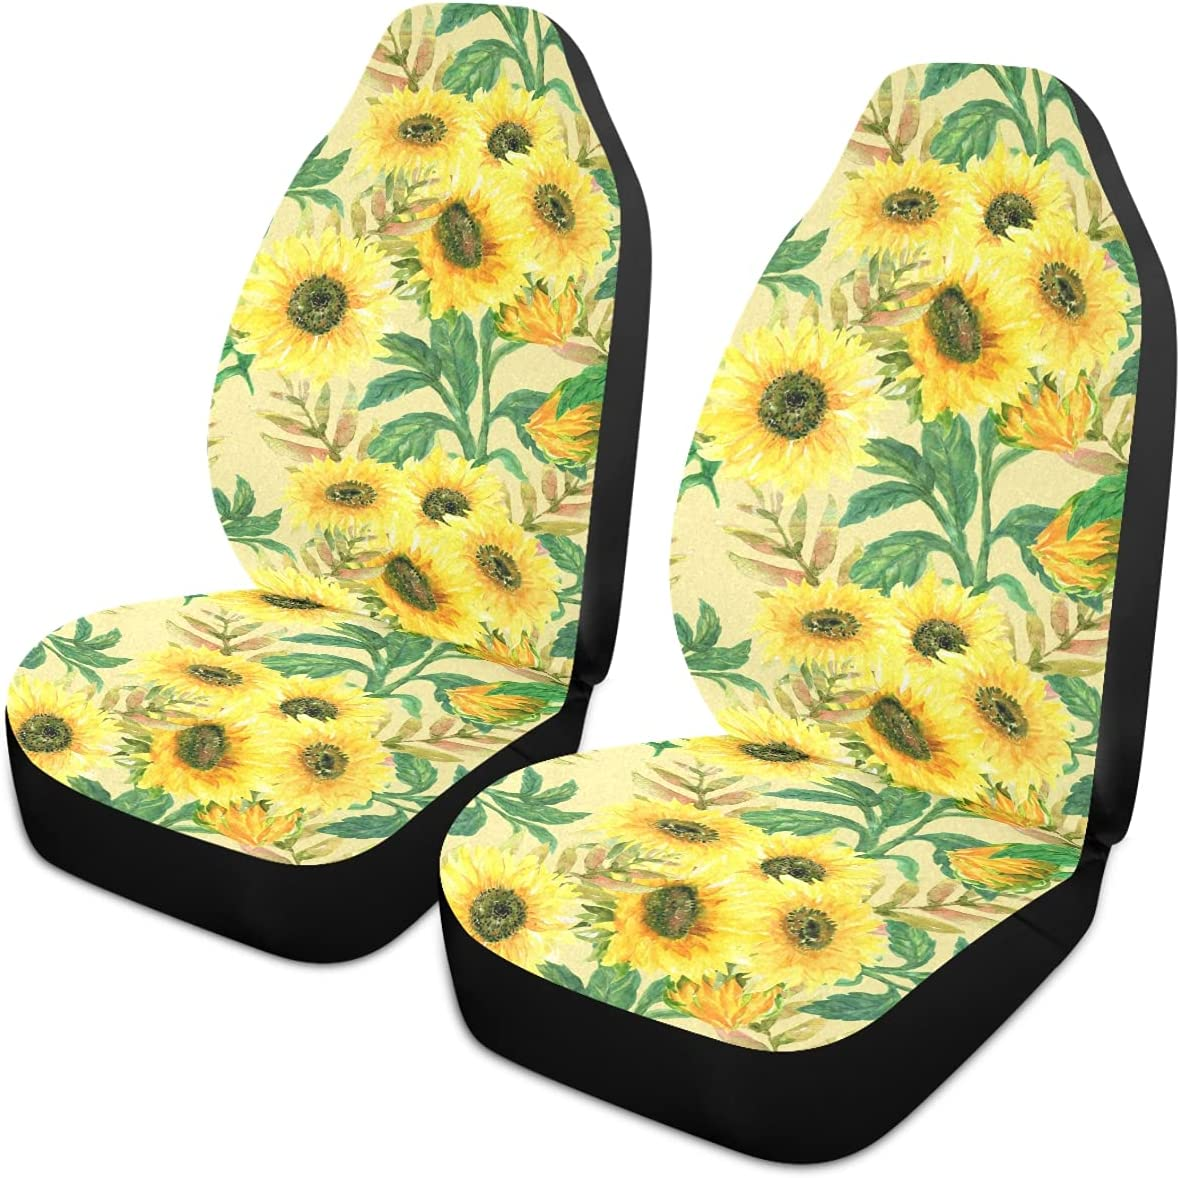 Oarencol Sunflower Car Max 61% OFF Seat Covers Vintage Watercolor Le Flowers Indefinitely